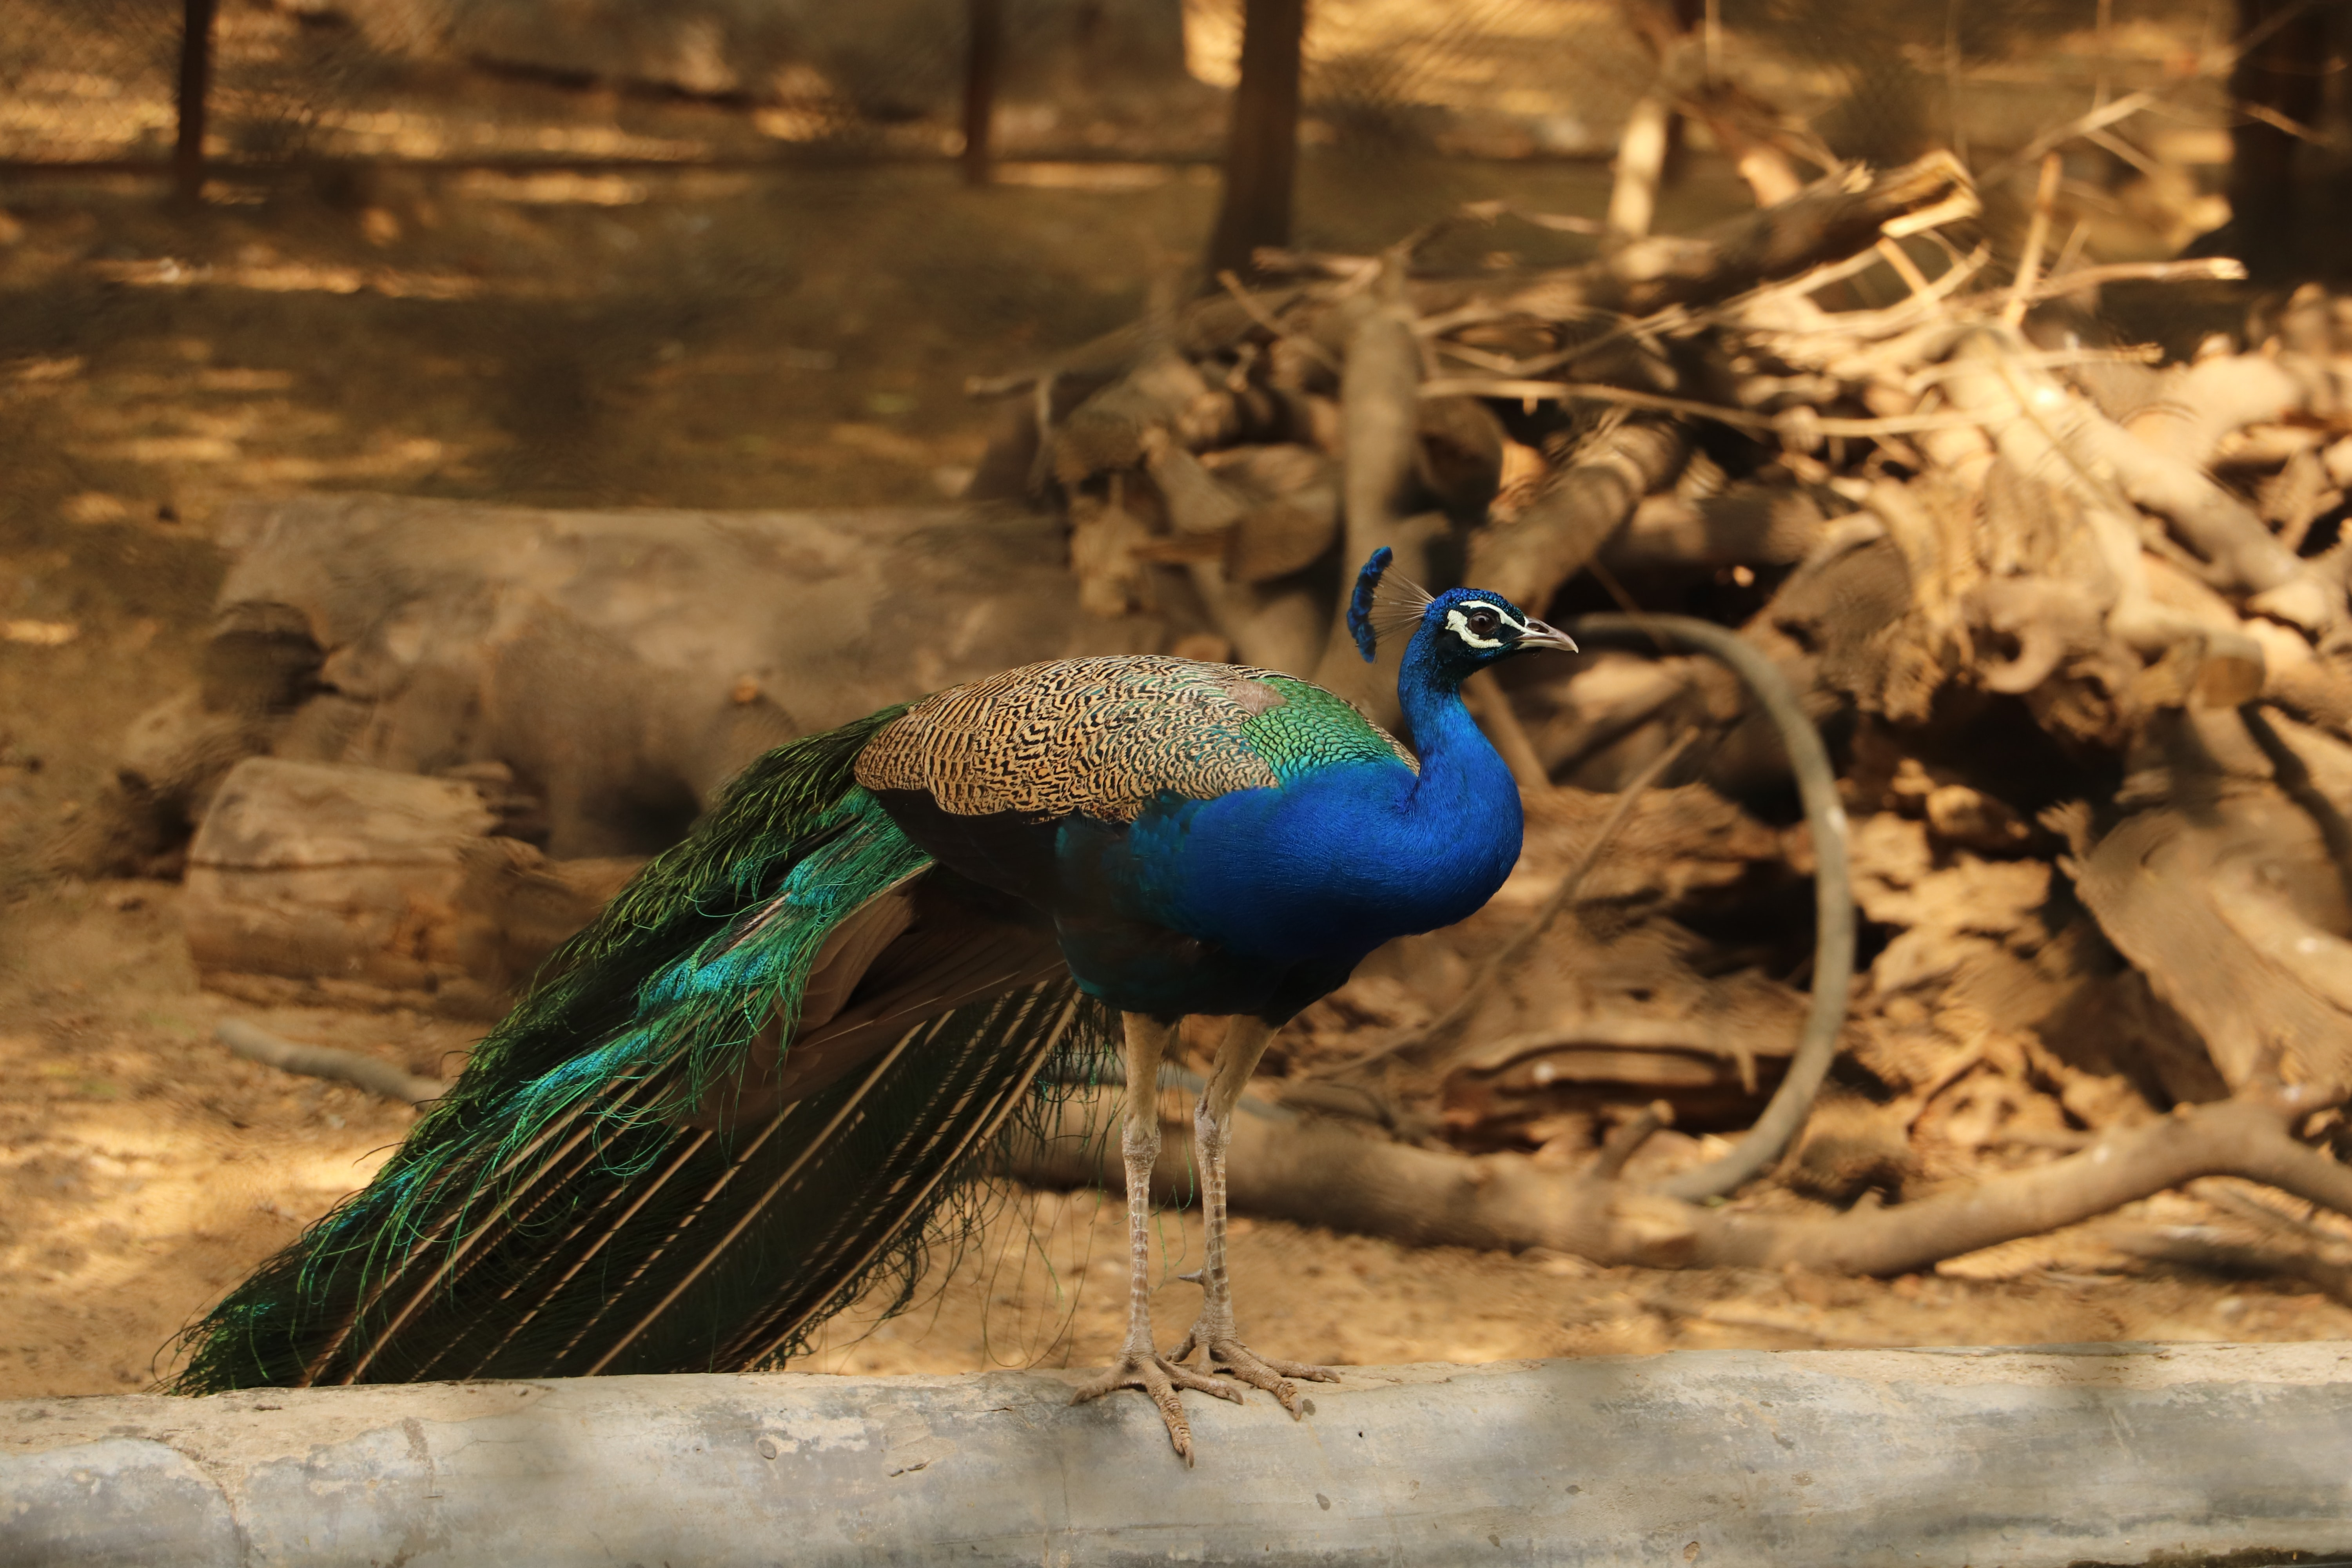 blue and green peacock on brown wood log